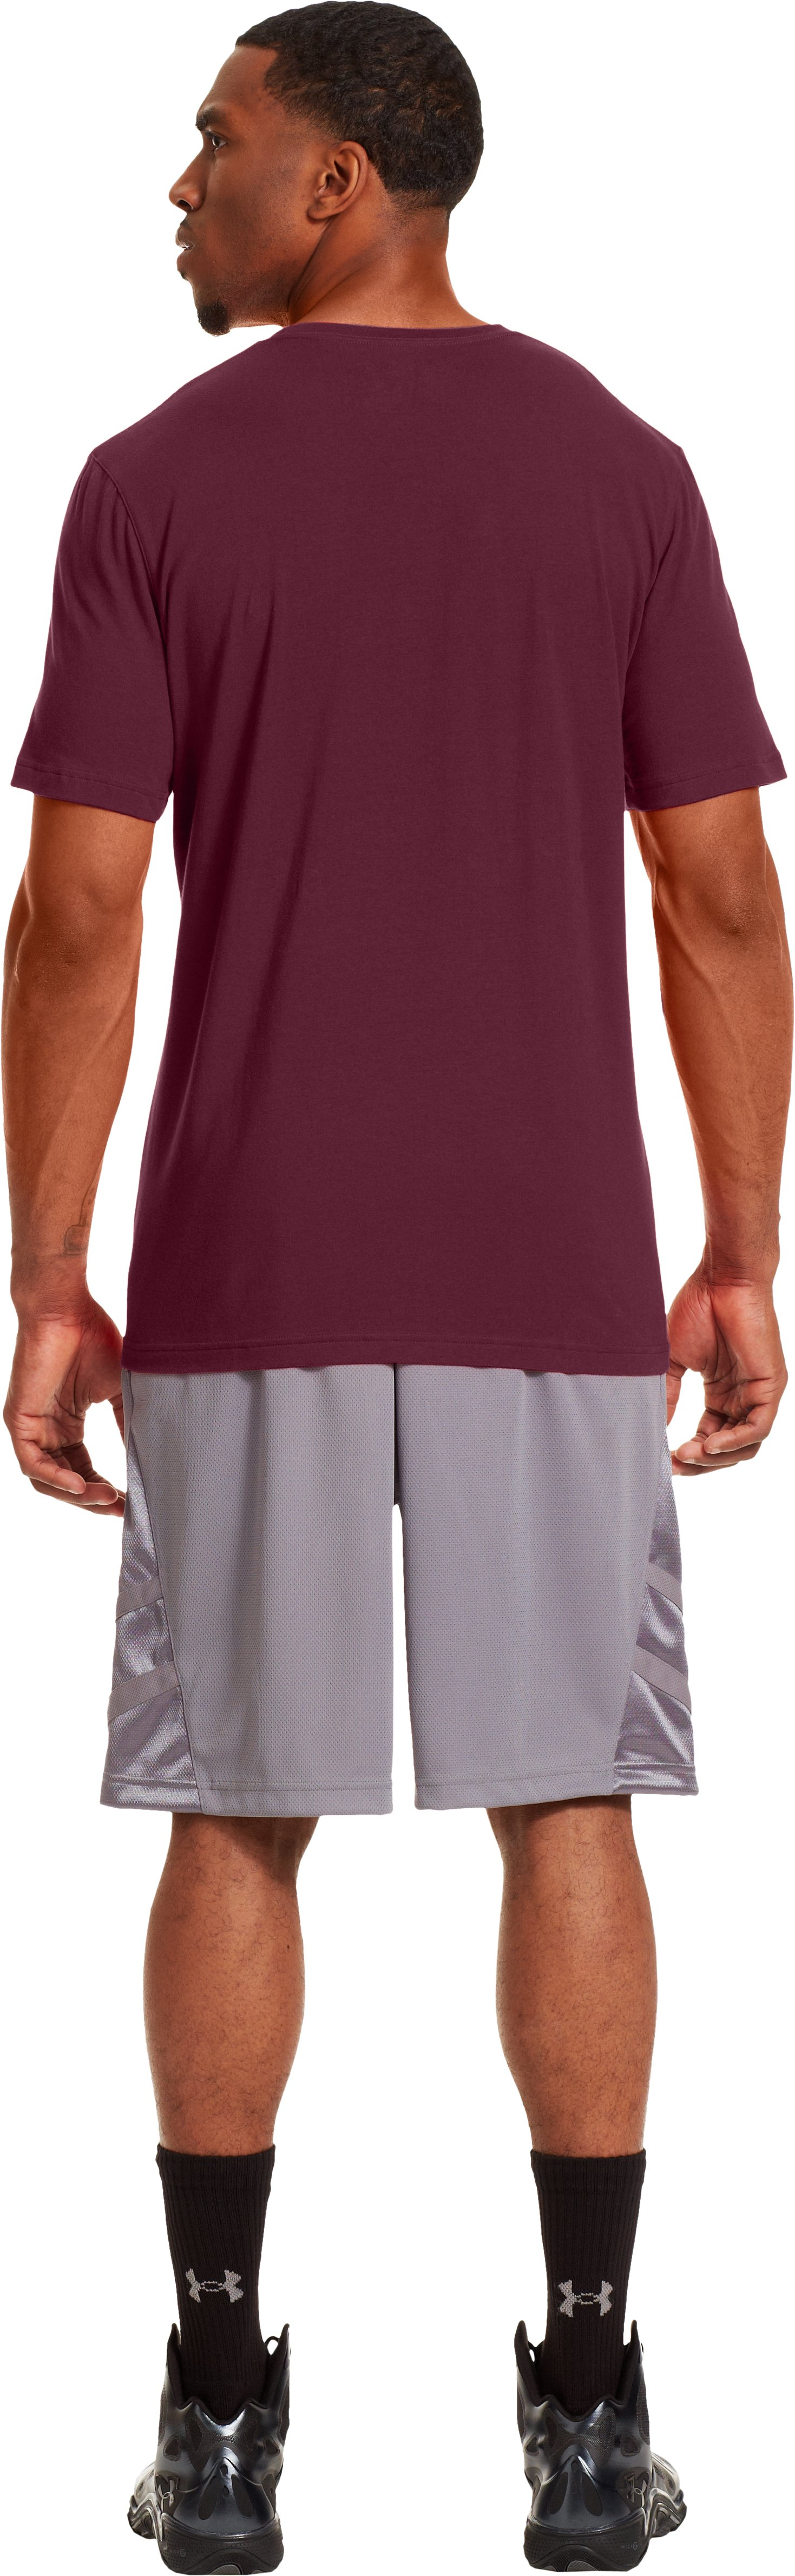 Men's Massachusetts UA Basketball T-Shirt, Maroon, Back